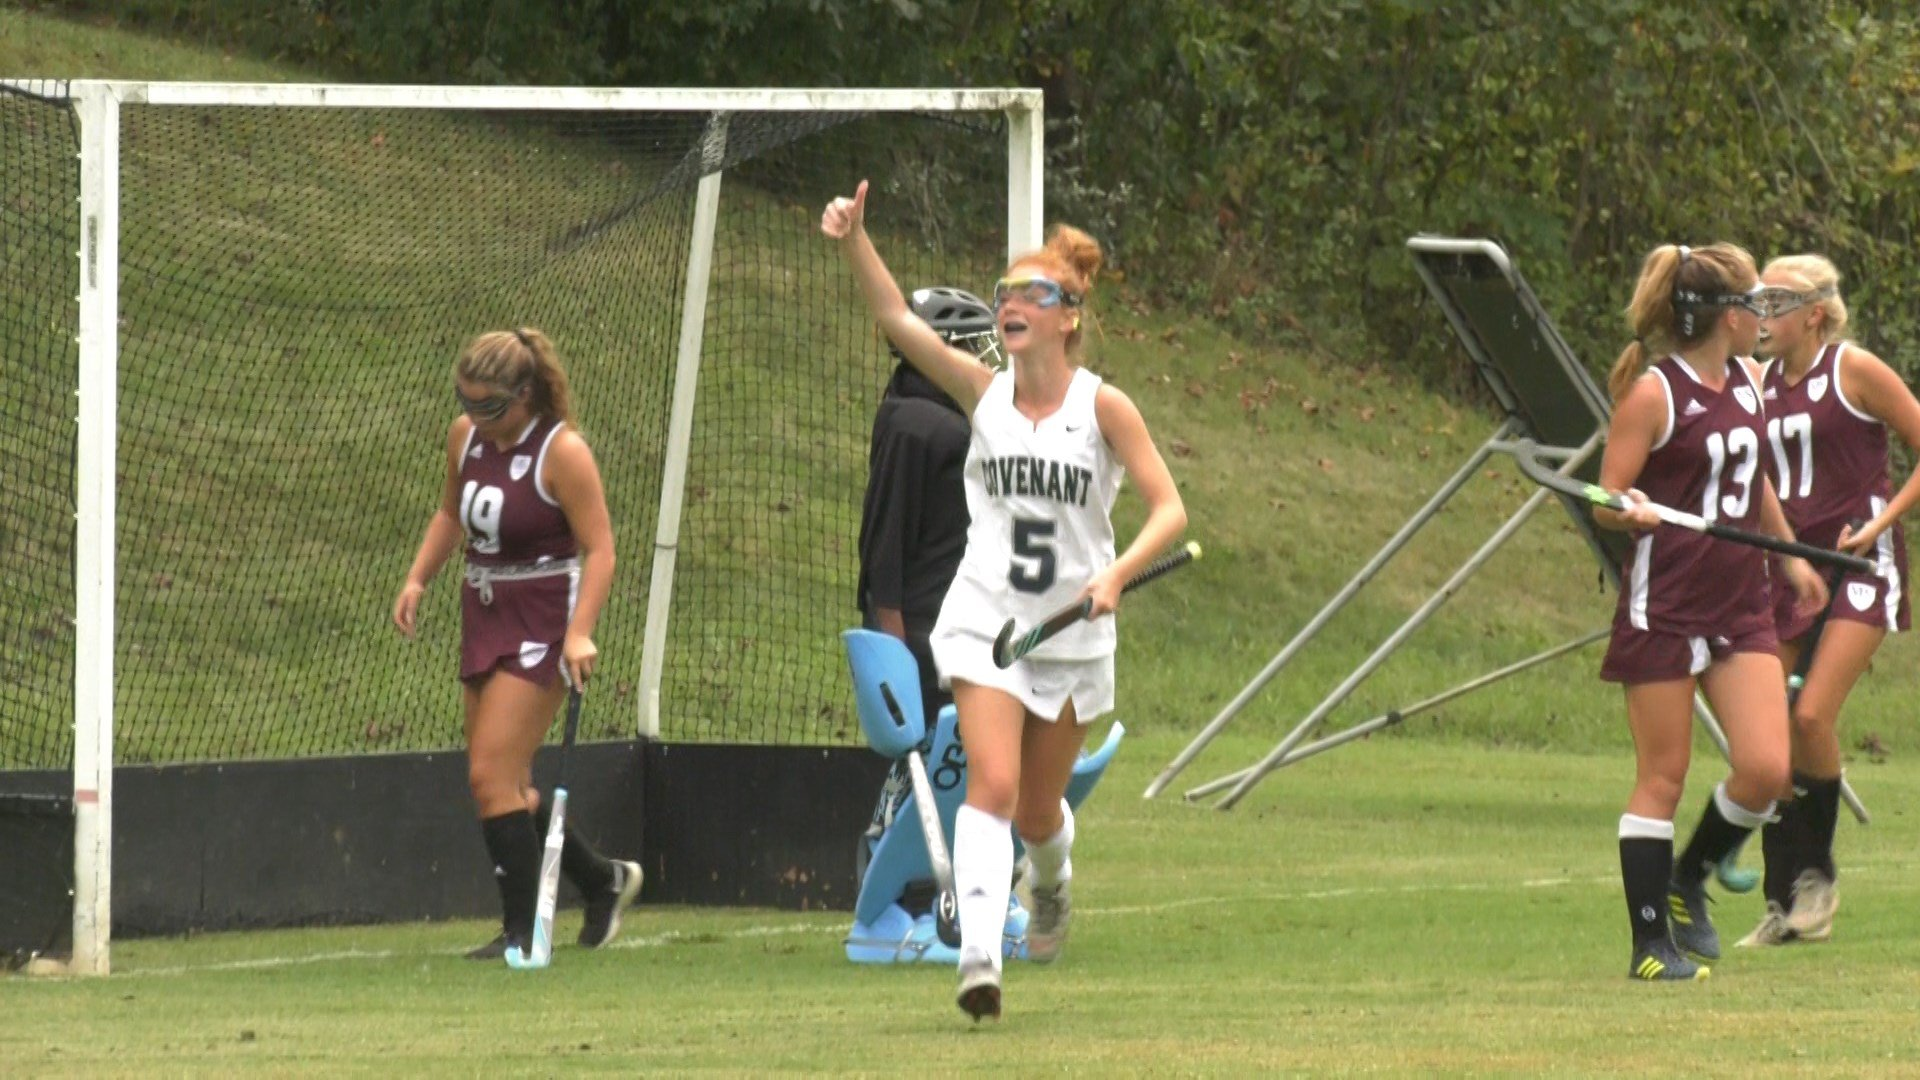 Tuesday's High School Sports Scores Highlights